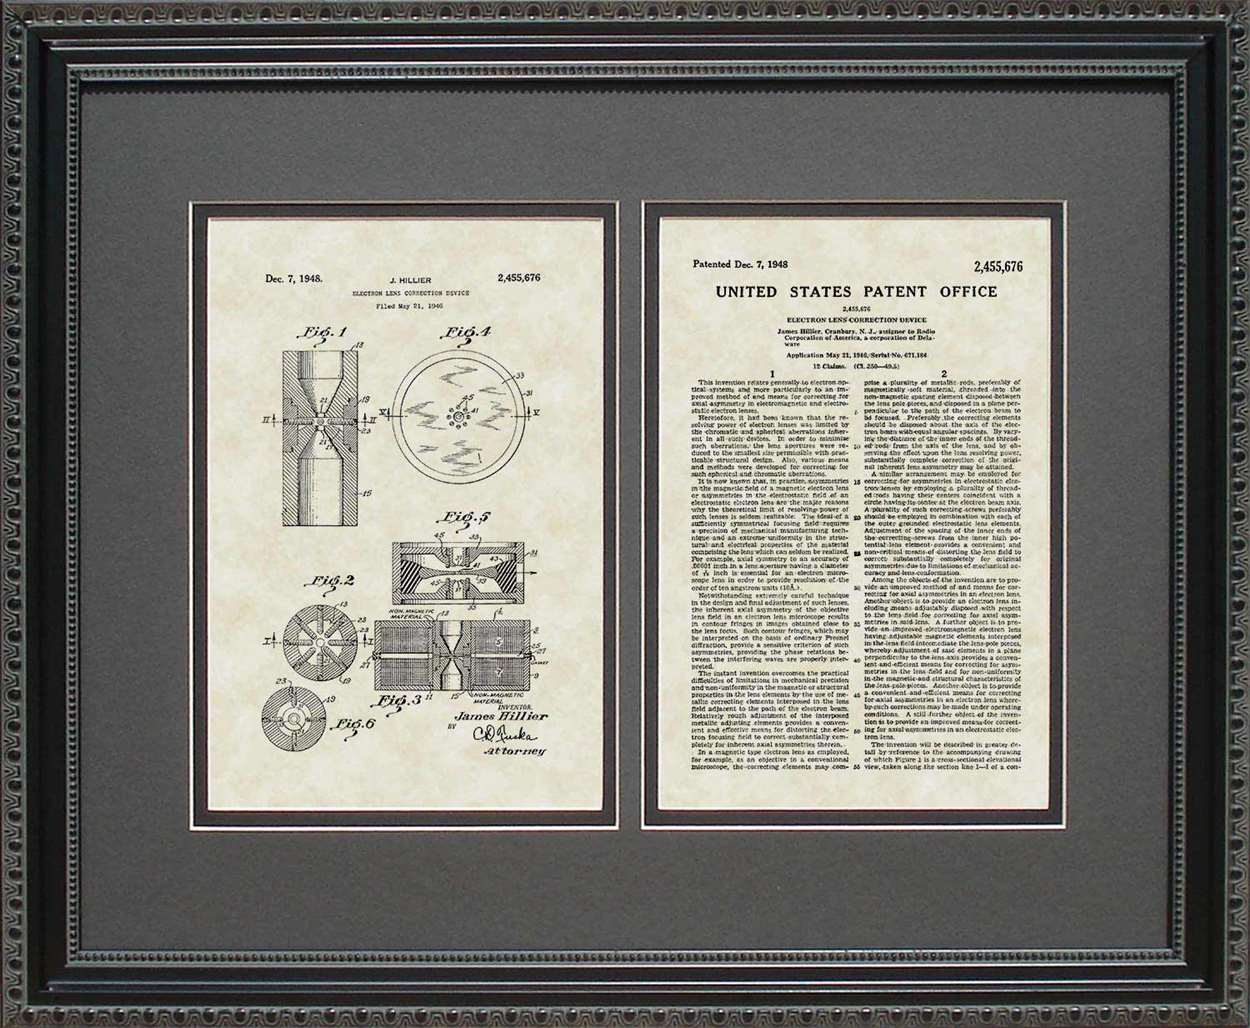 Electron Microscope Patent, Art & Copy, Hillier, 1948, 16x20